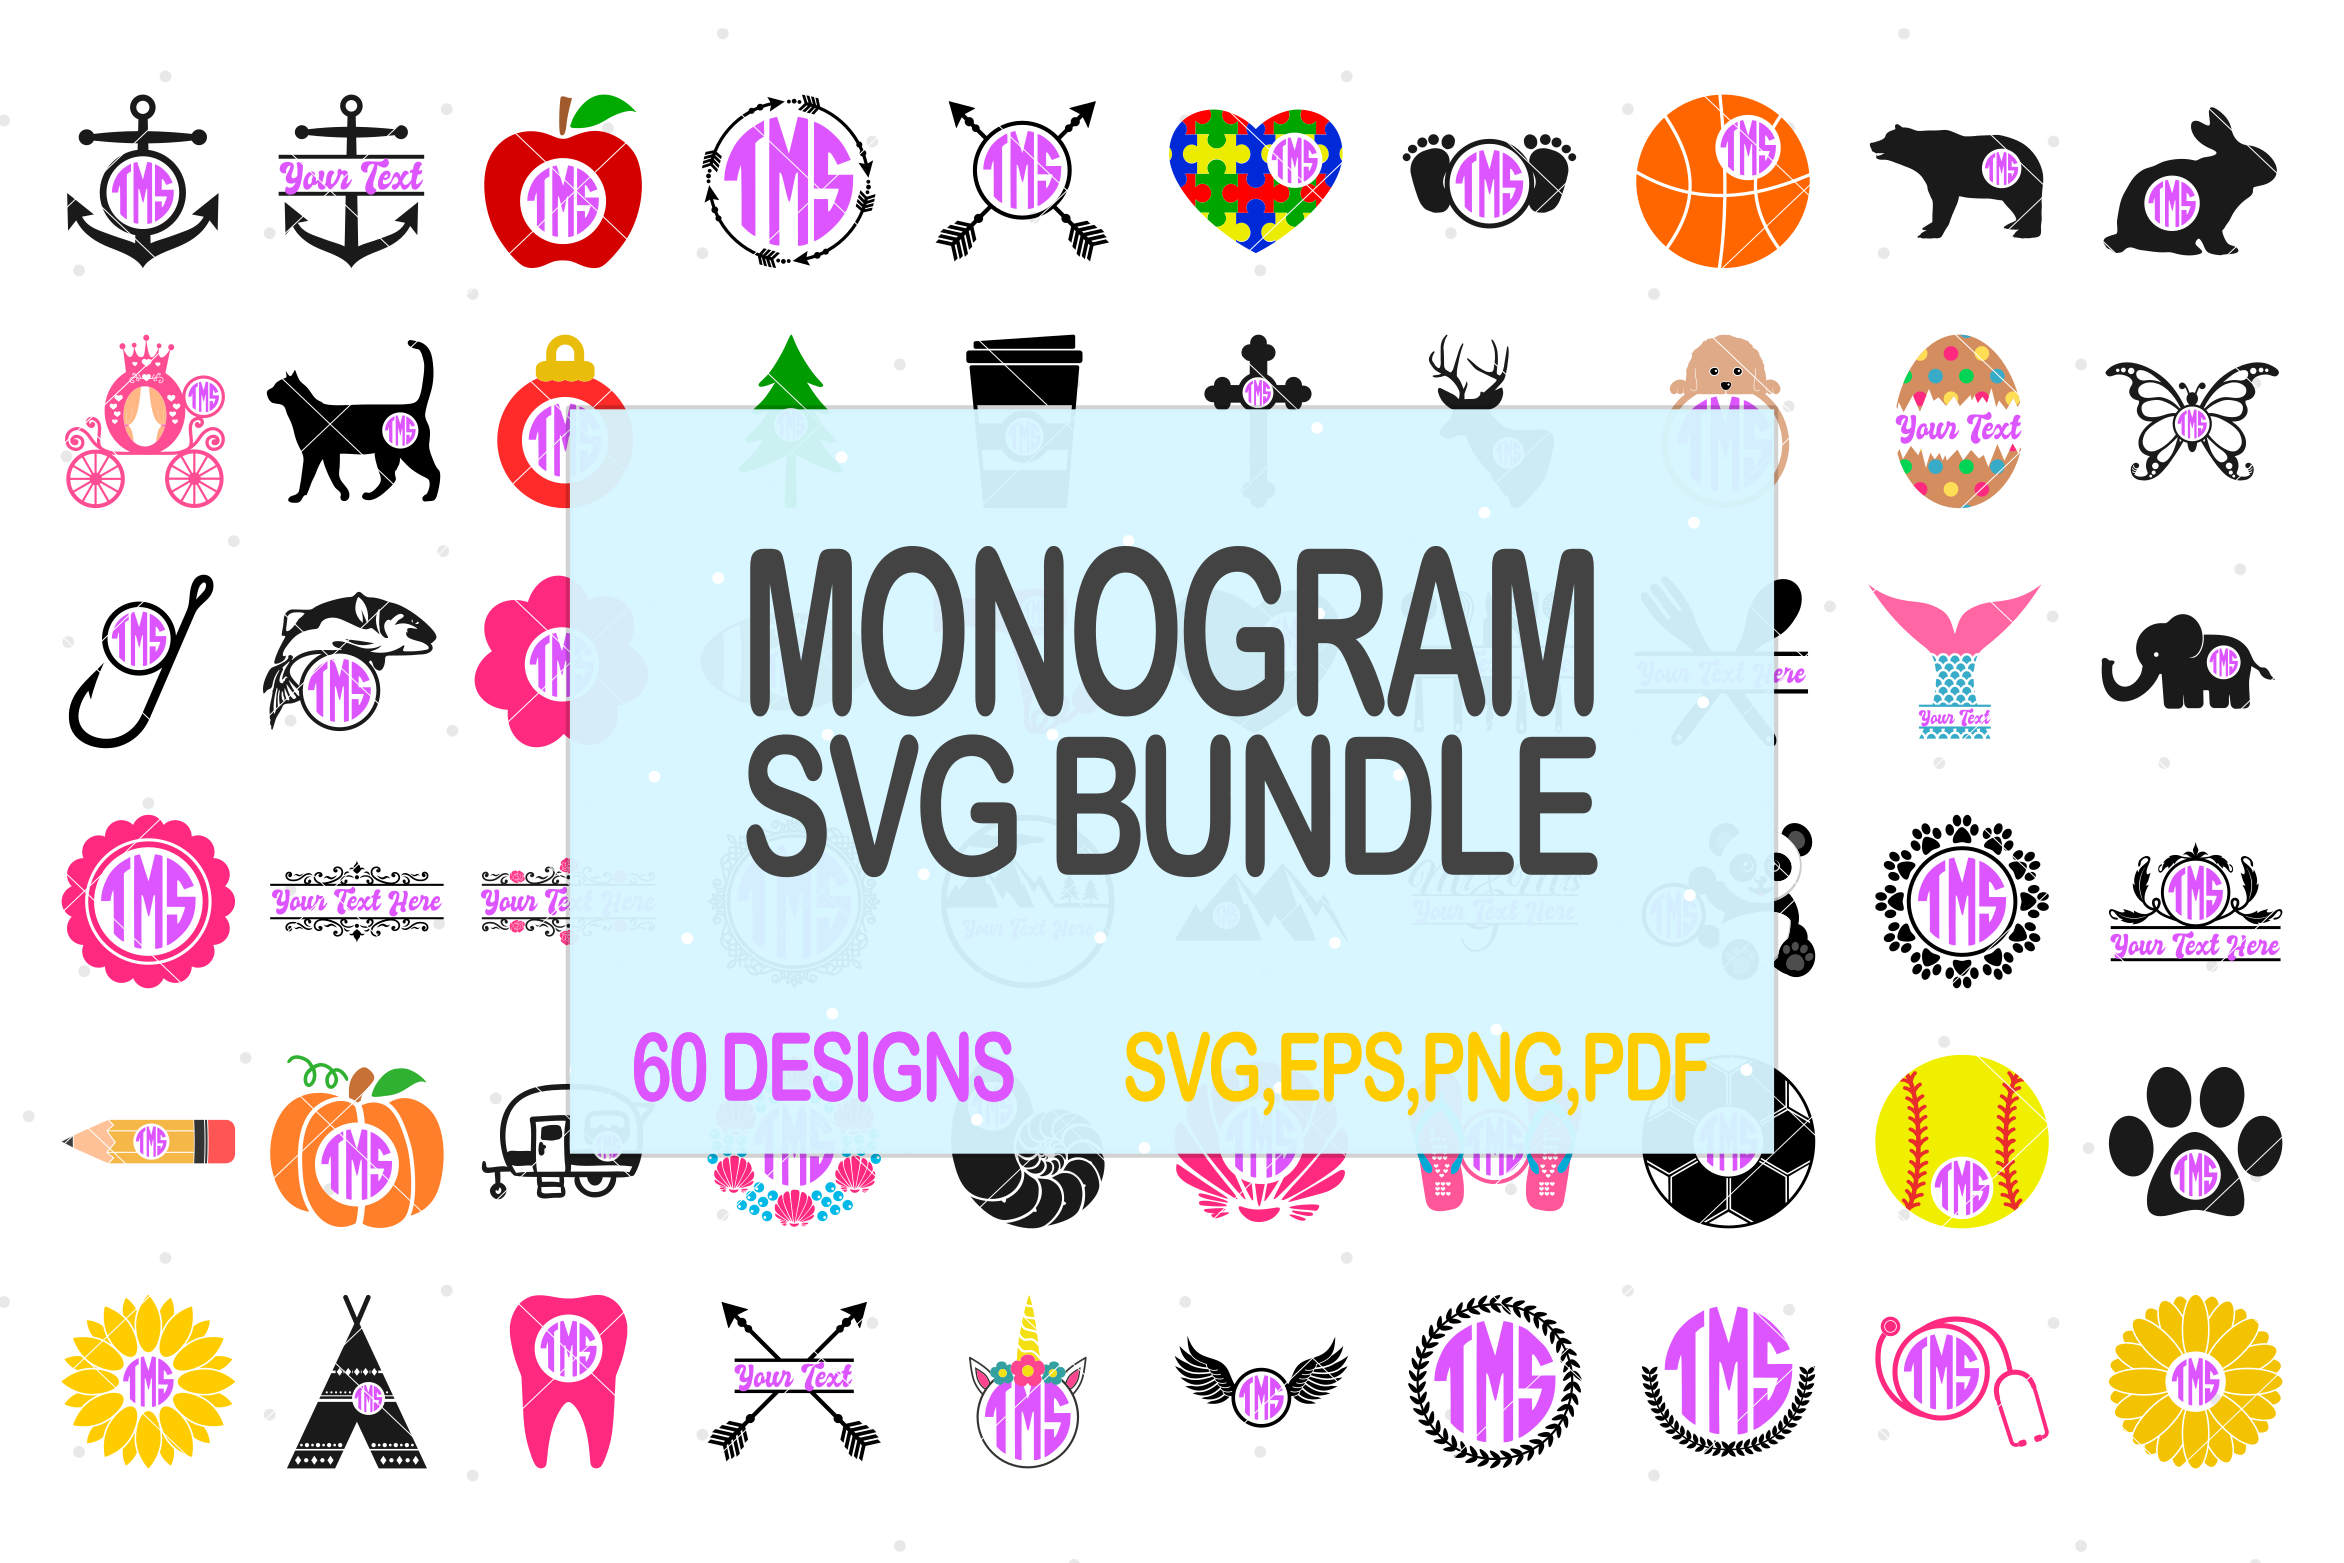 Download Free Monogram Bundle Graphic By Pinoyartkreatib Creative Fabrica for Cricut Explore, Silhouette and other cutting machines.